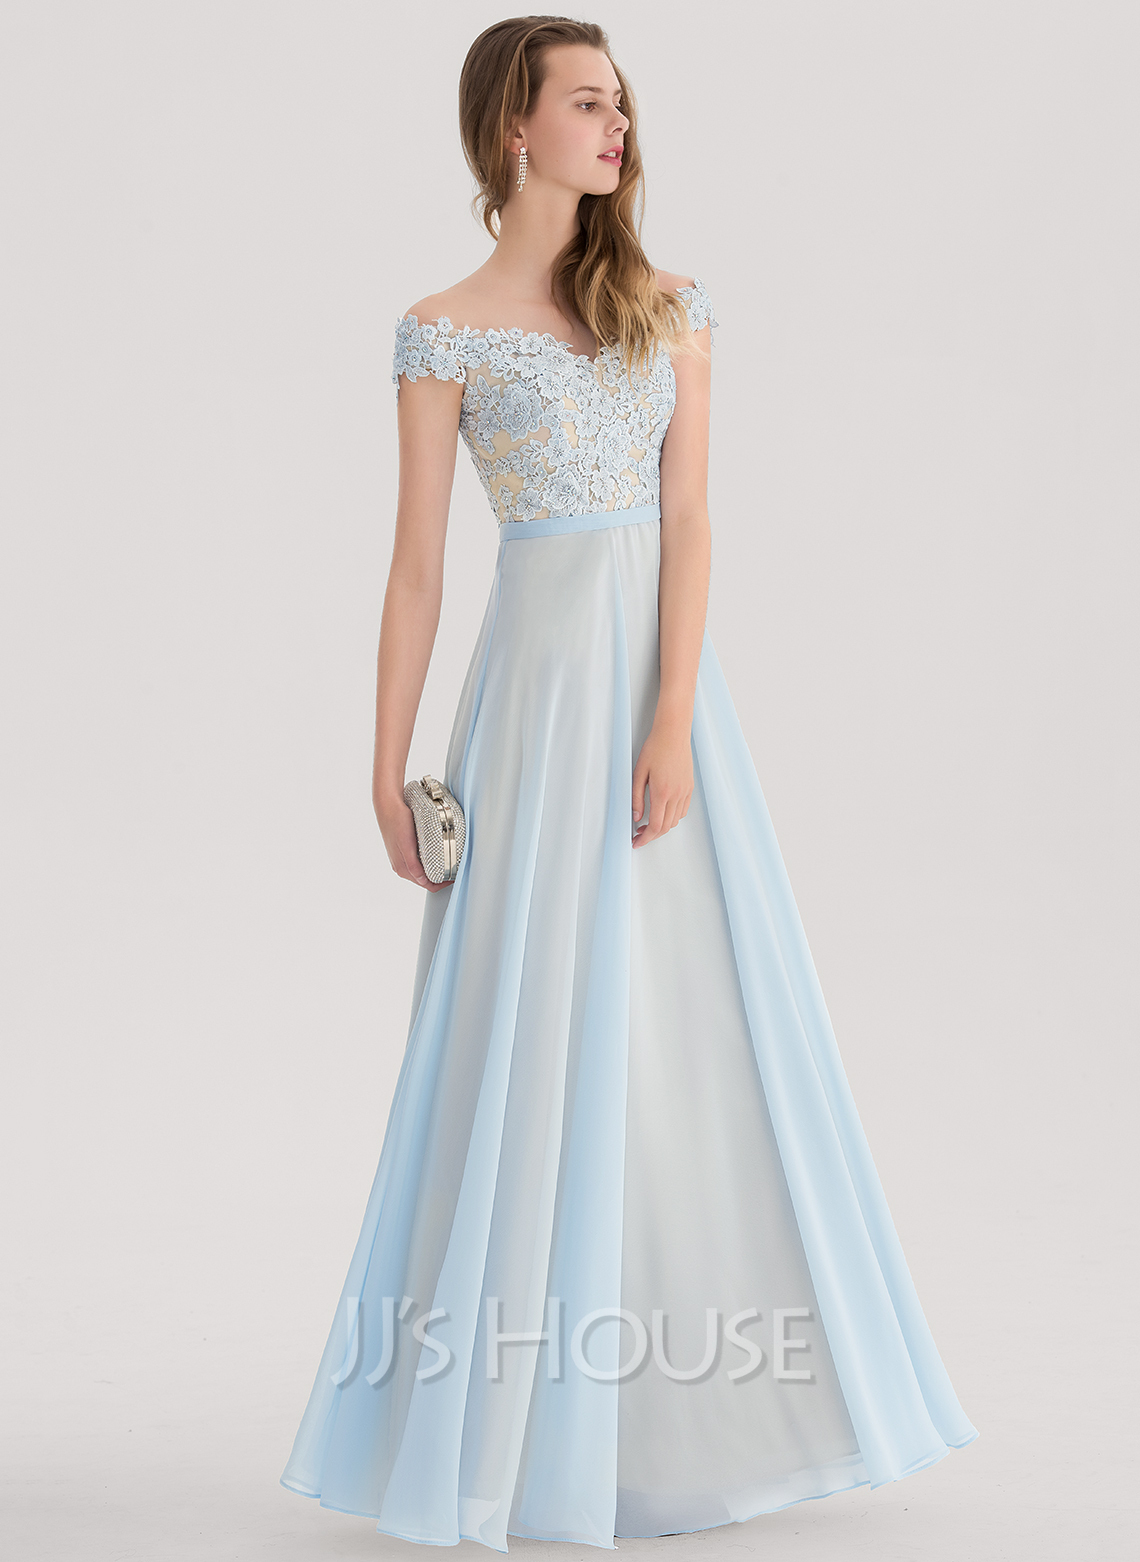 Off-the-Shoulder Floor-Length Chiffon Prom Dresses With Beading